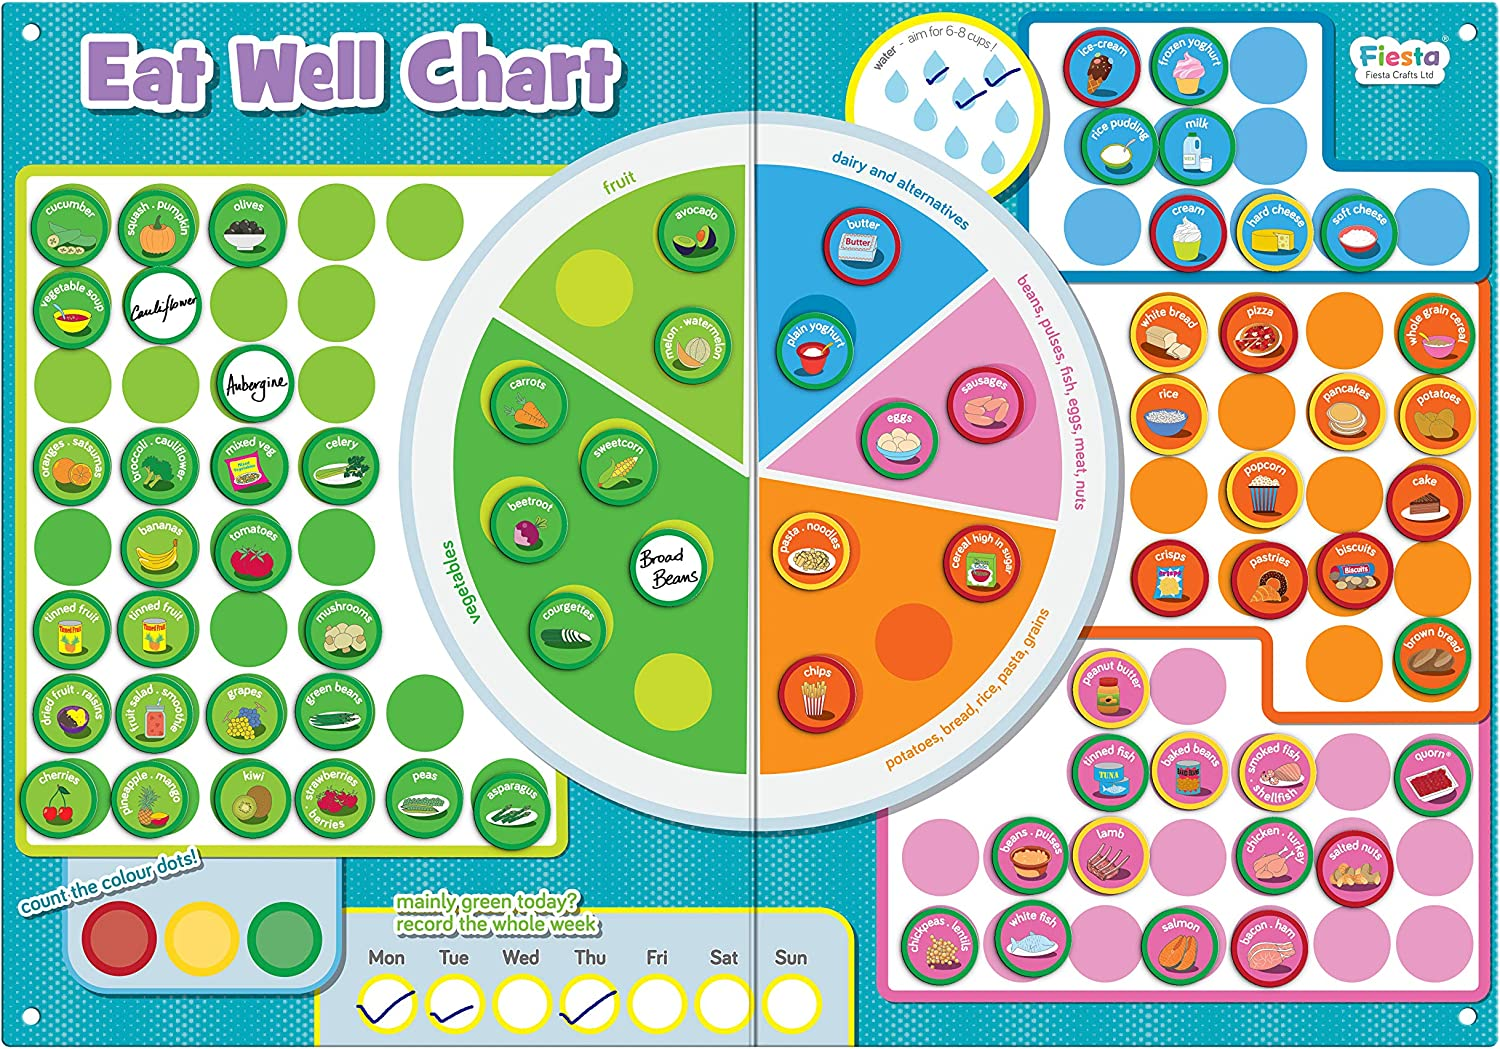 Fiesta Crafts T-2946 Magnetic Eat Well Chart Choose Healthy Snacks Food Facts for Kids